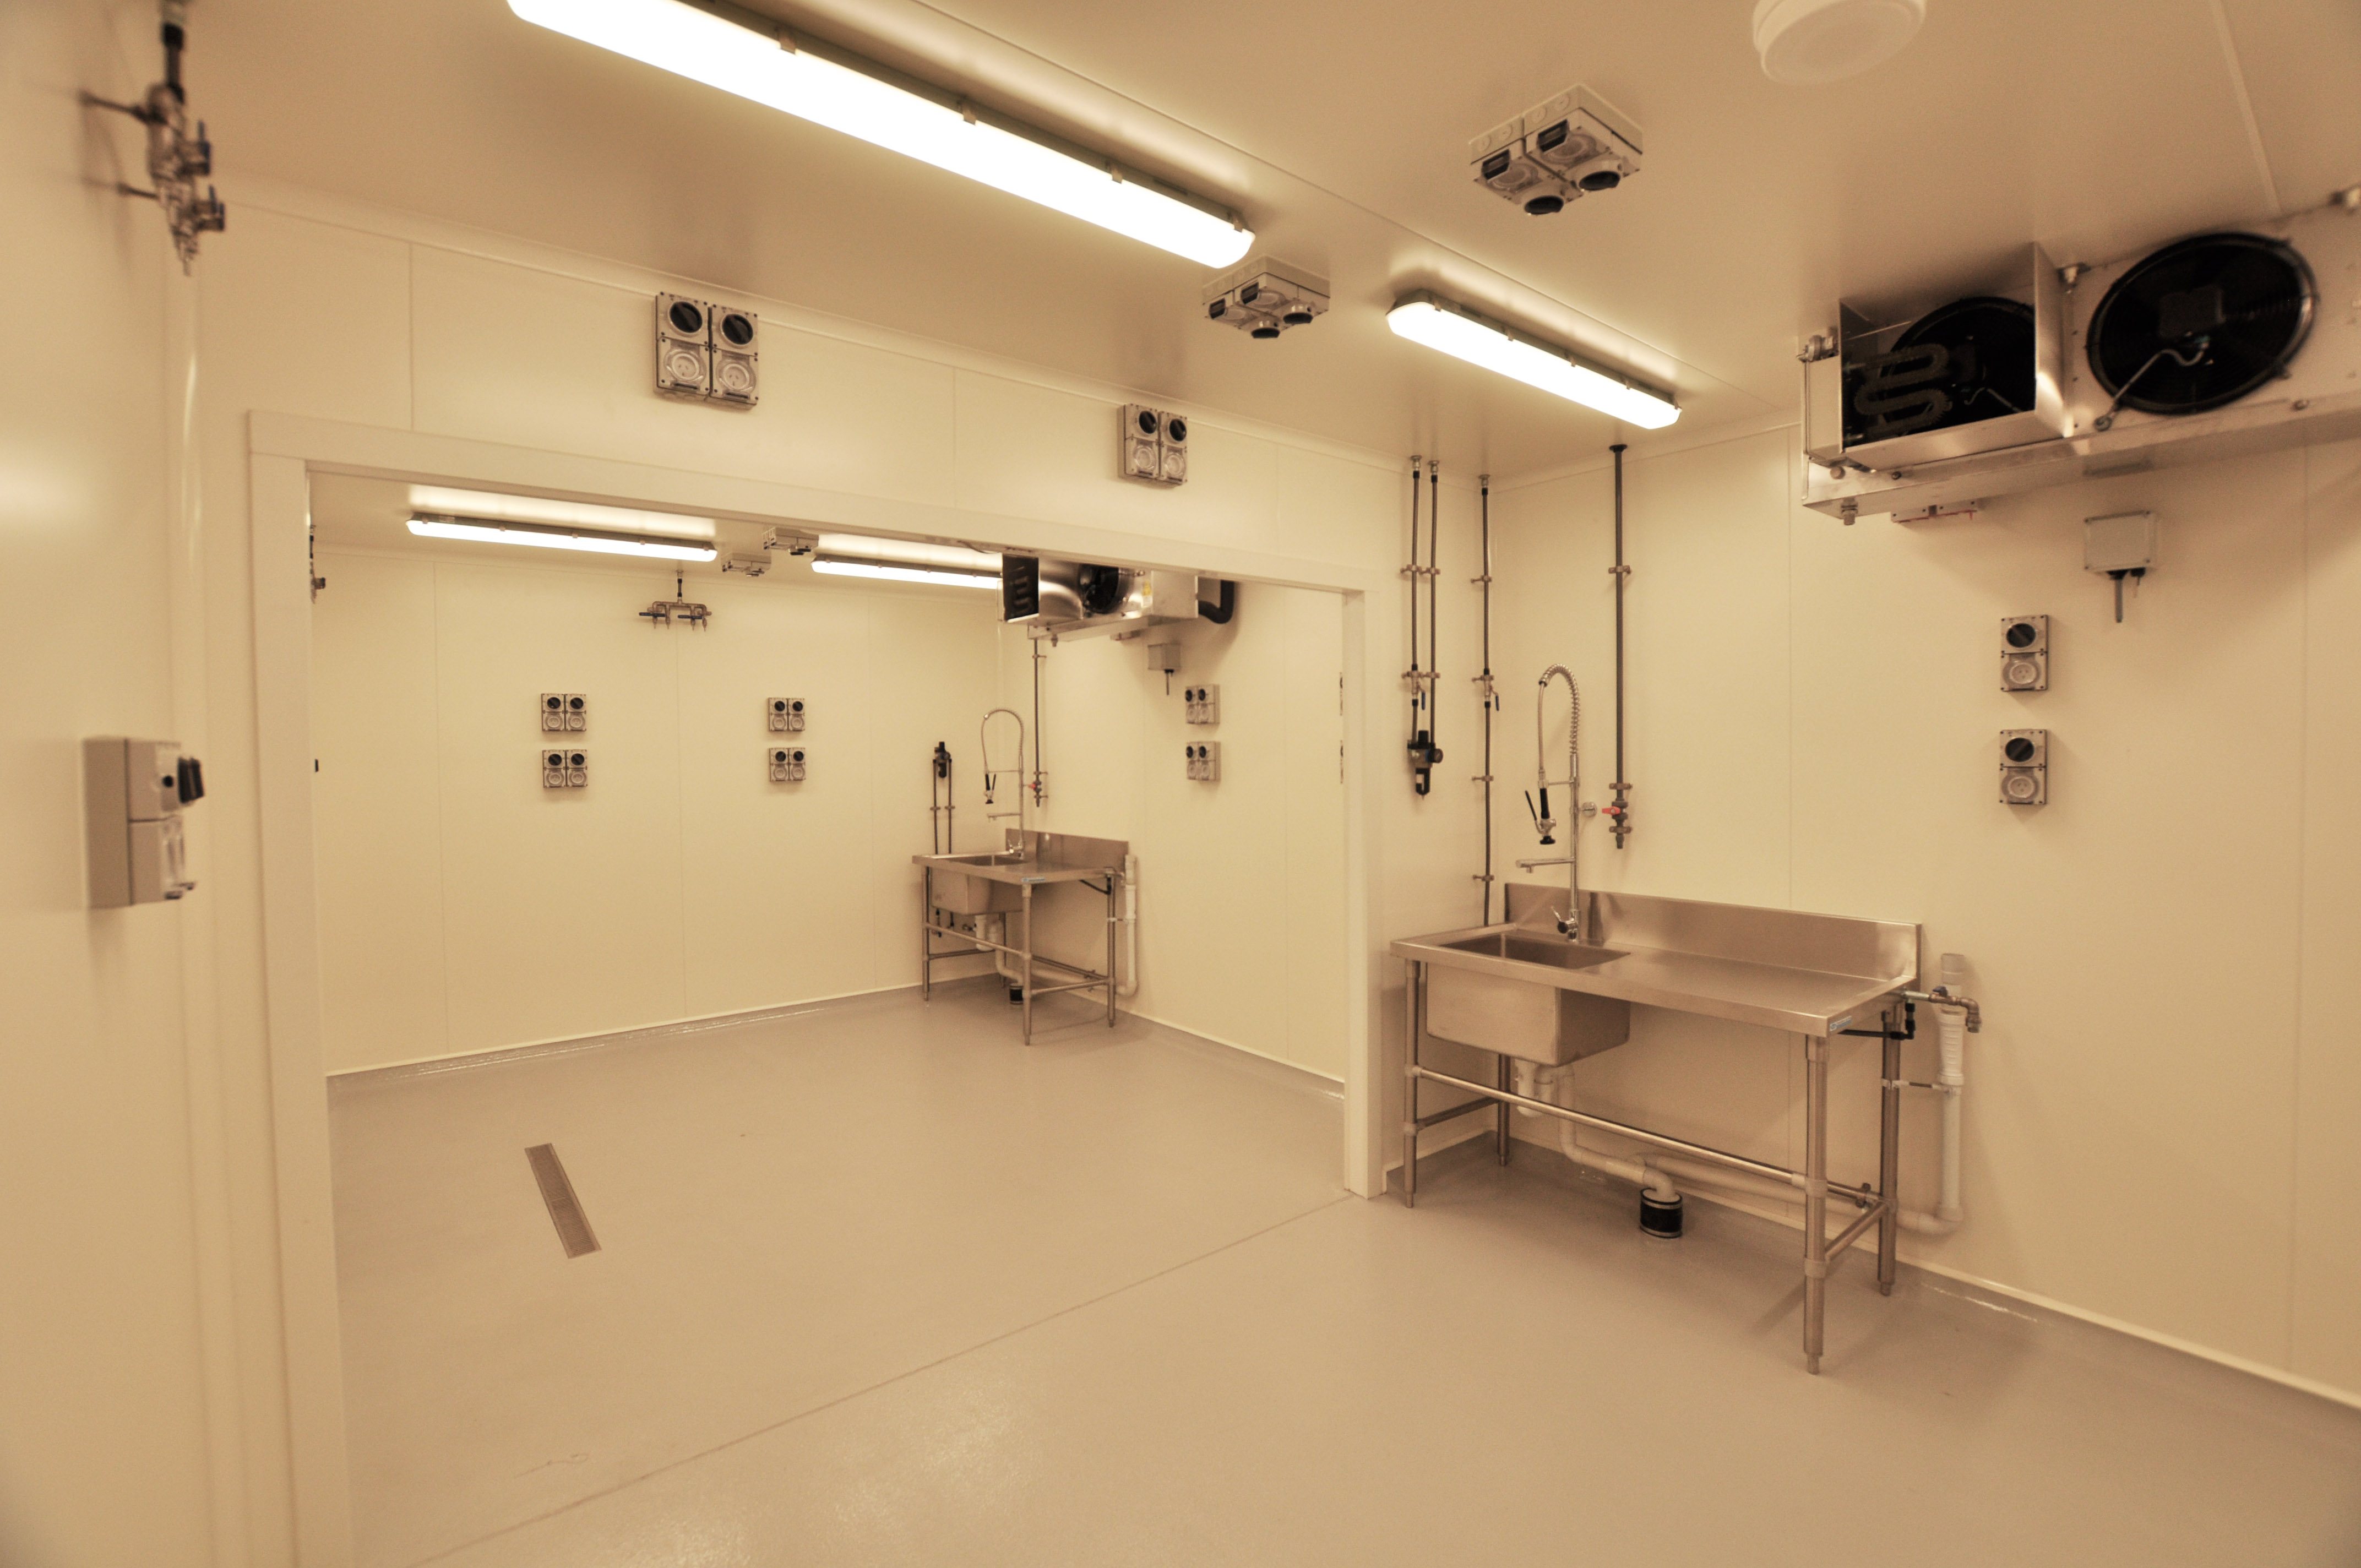 Fbj Cool Rooms Spray Booths And Maintenance Melbourne